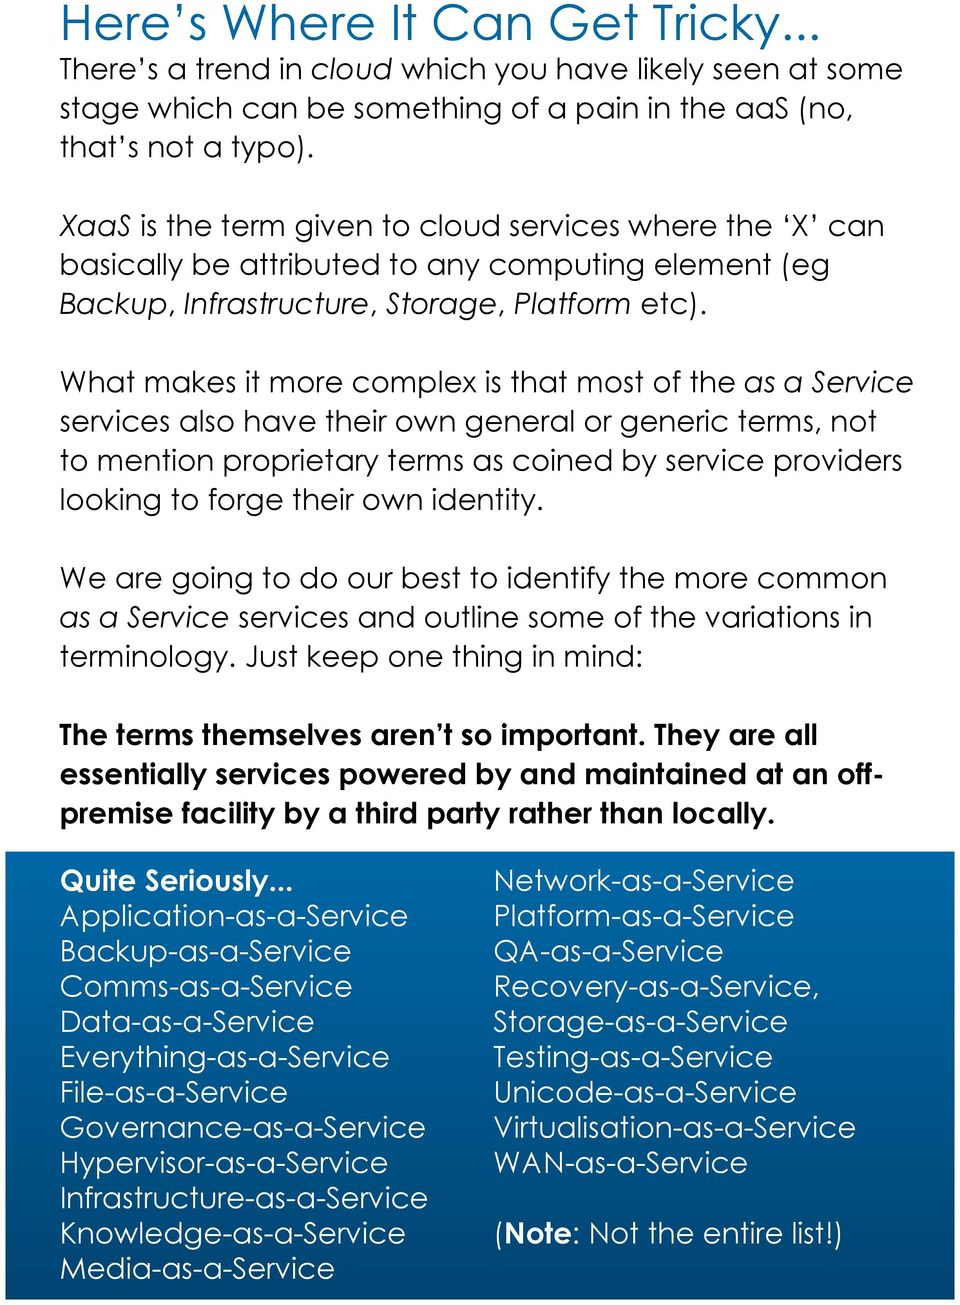 What makes it more complex is that most of the as a Service services also have their own general or generic terms, not to mention proprietary terms as coined by service providers looking to forge